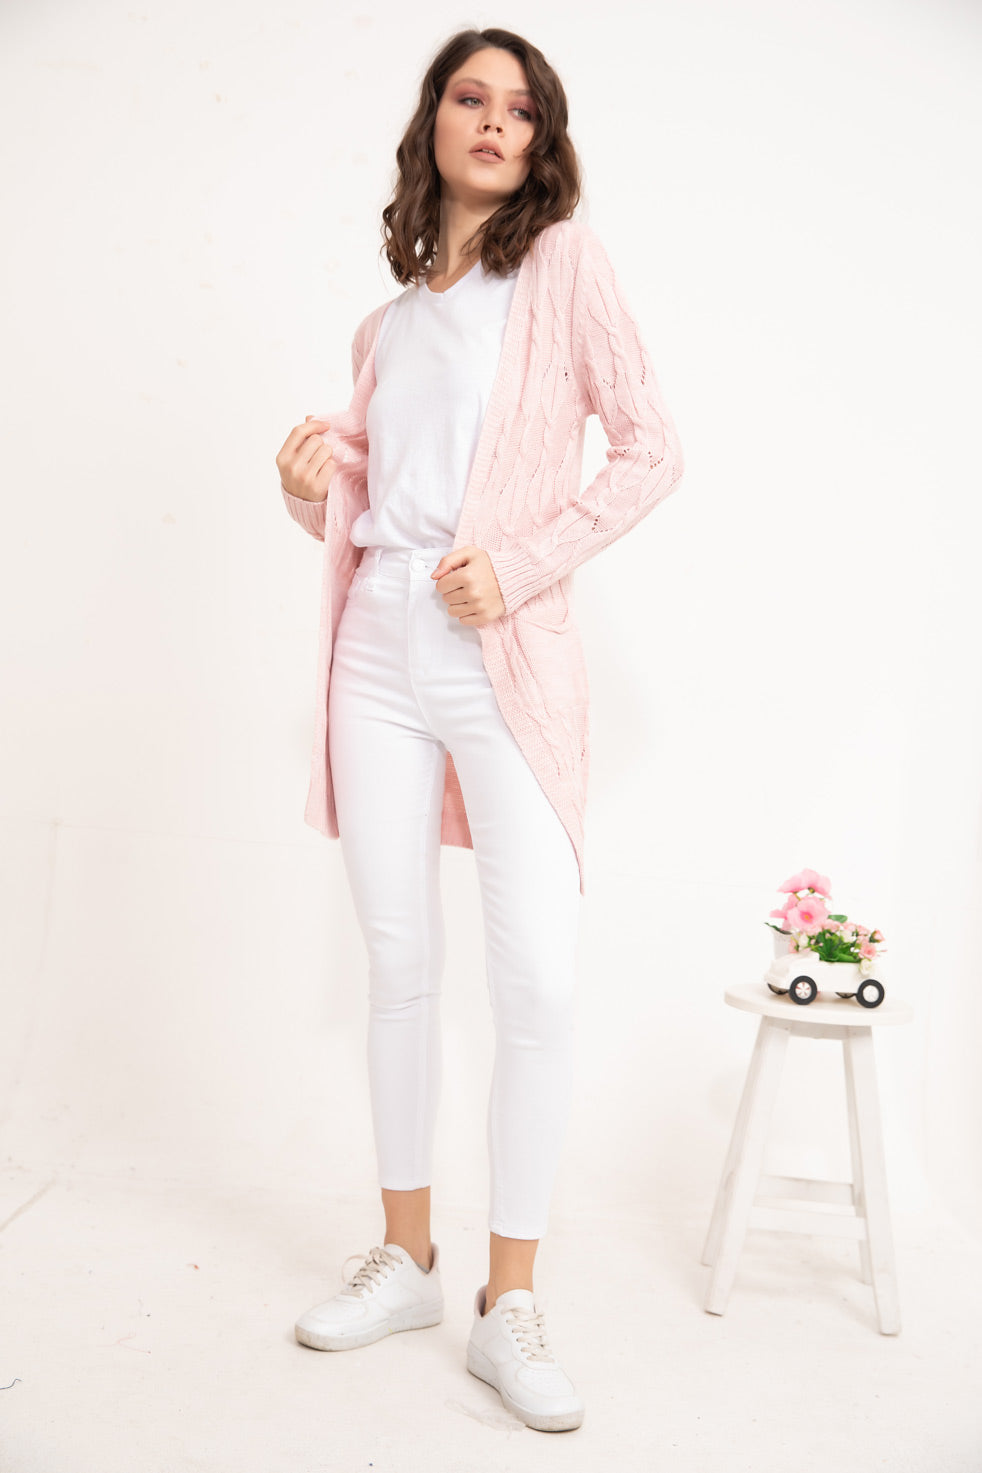 Rose-powder Patterned knitwear Cardigan